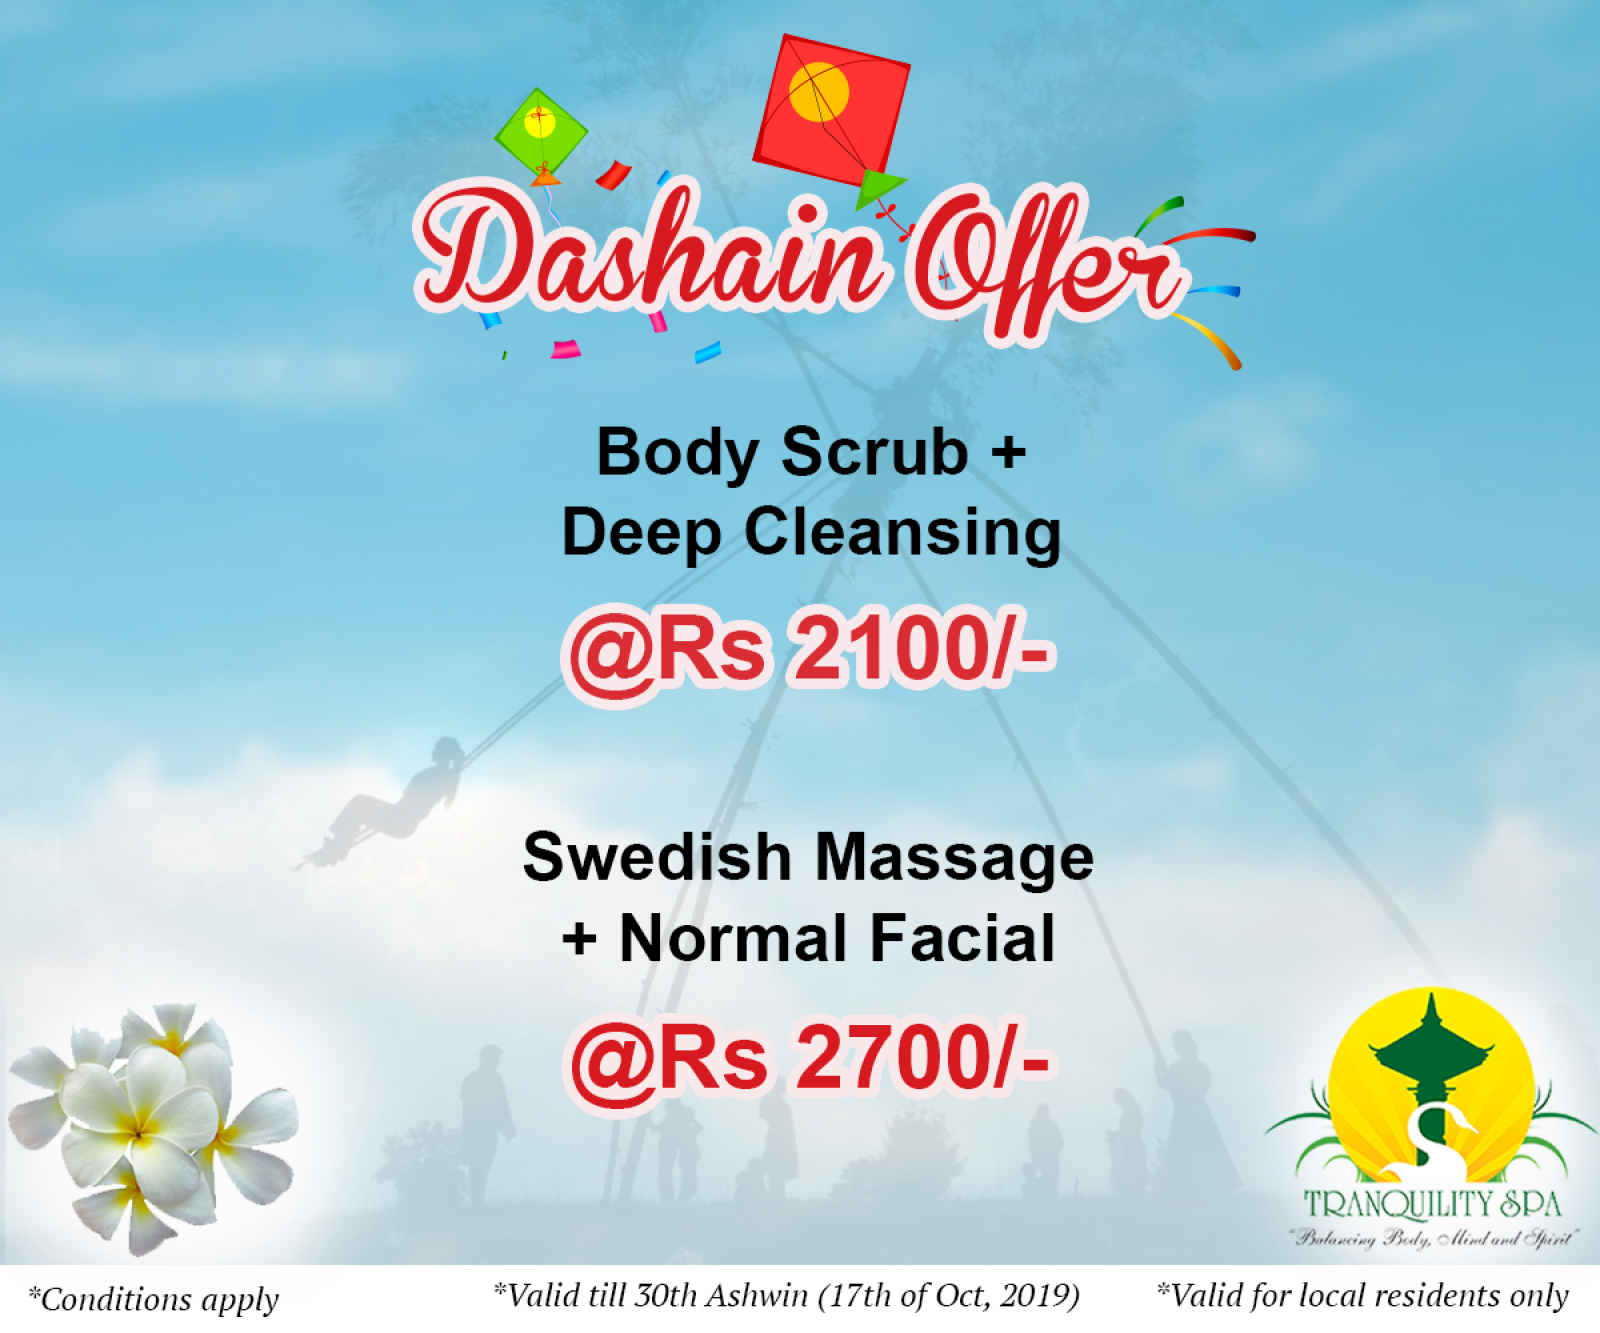 Dashain Offer (Valid till 17th of October, 2019)